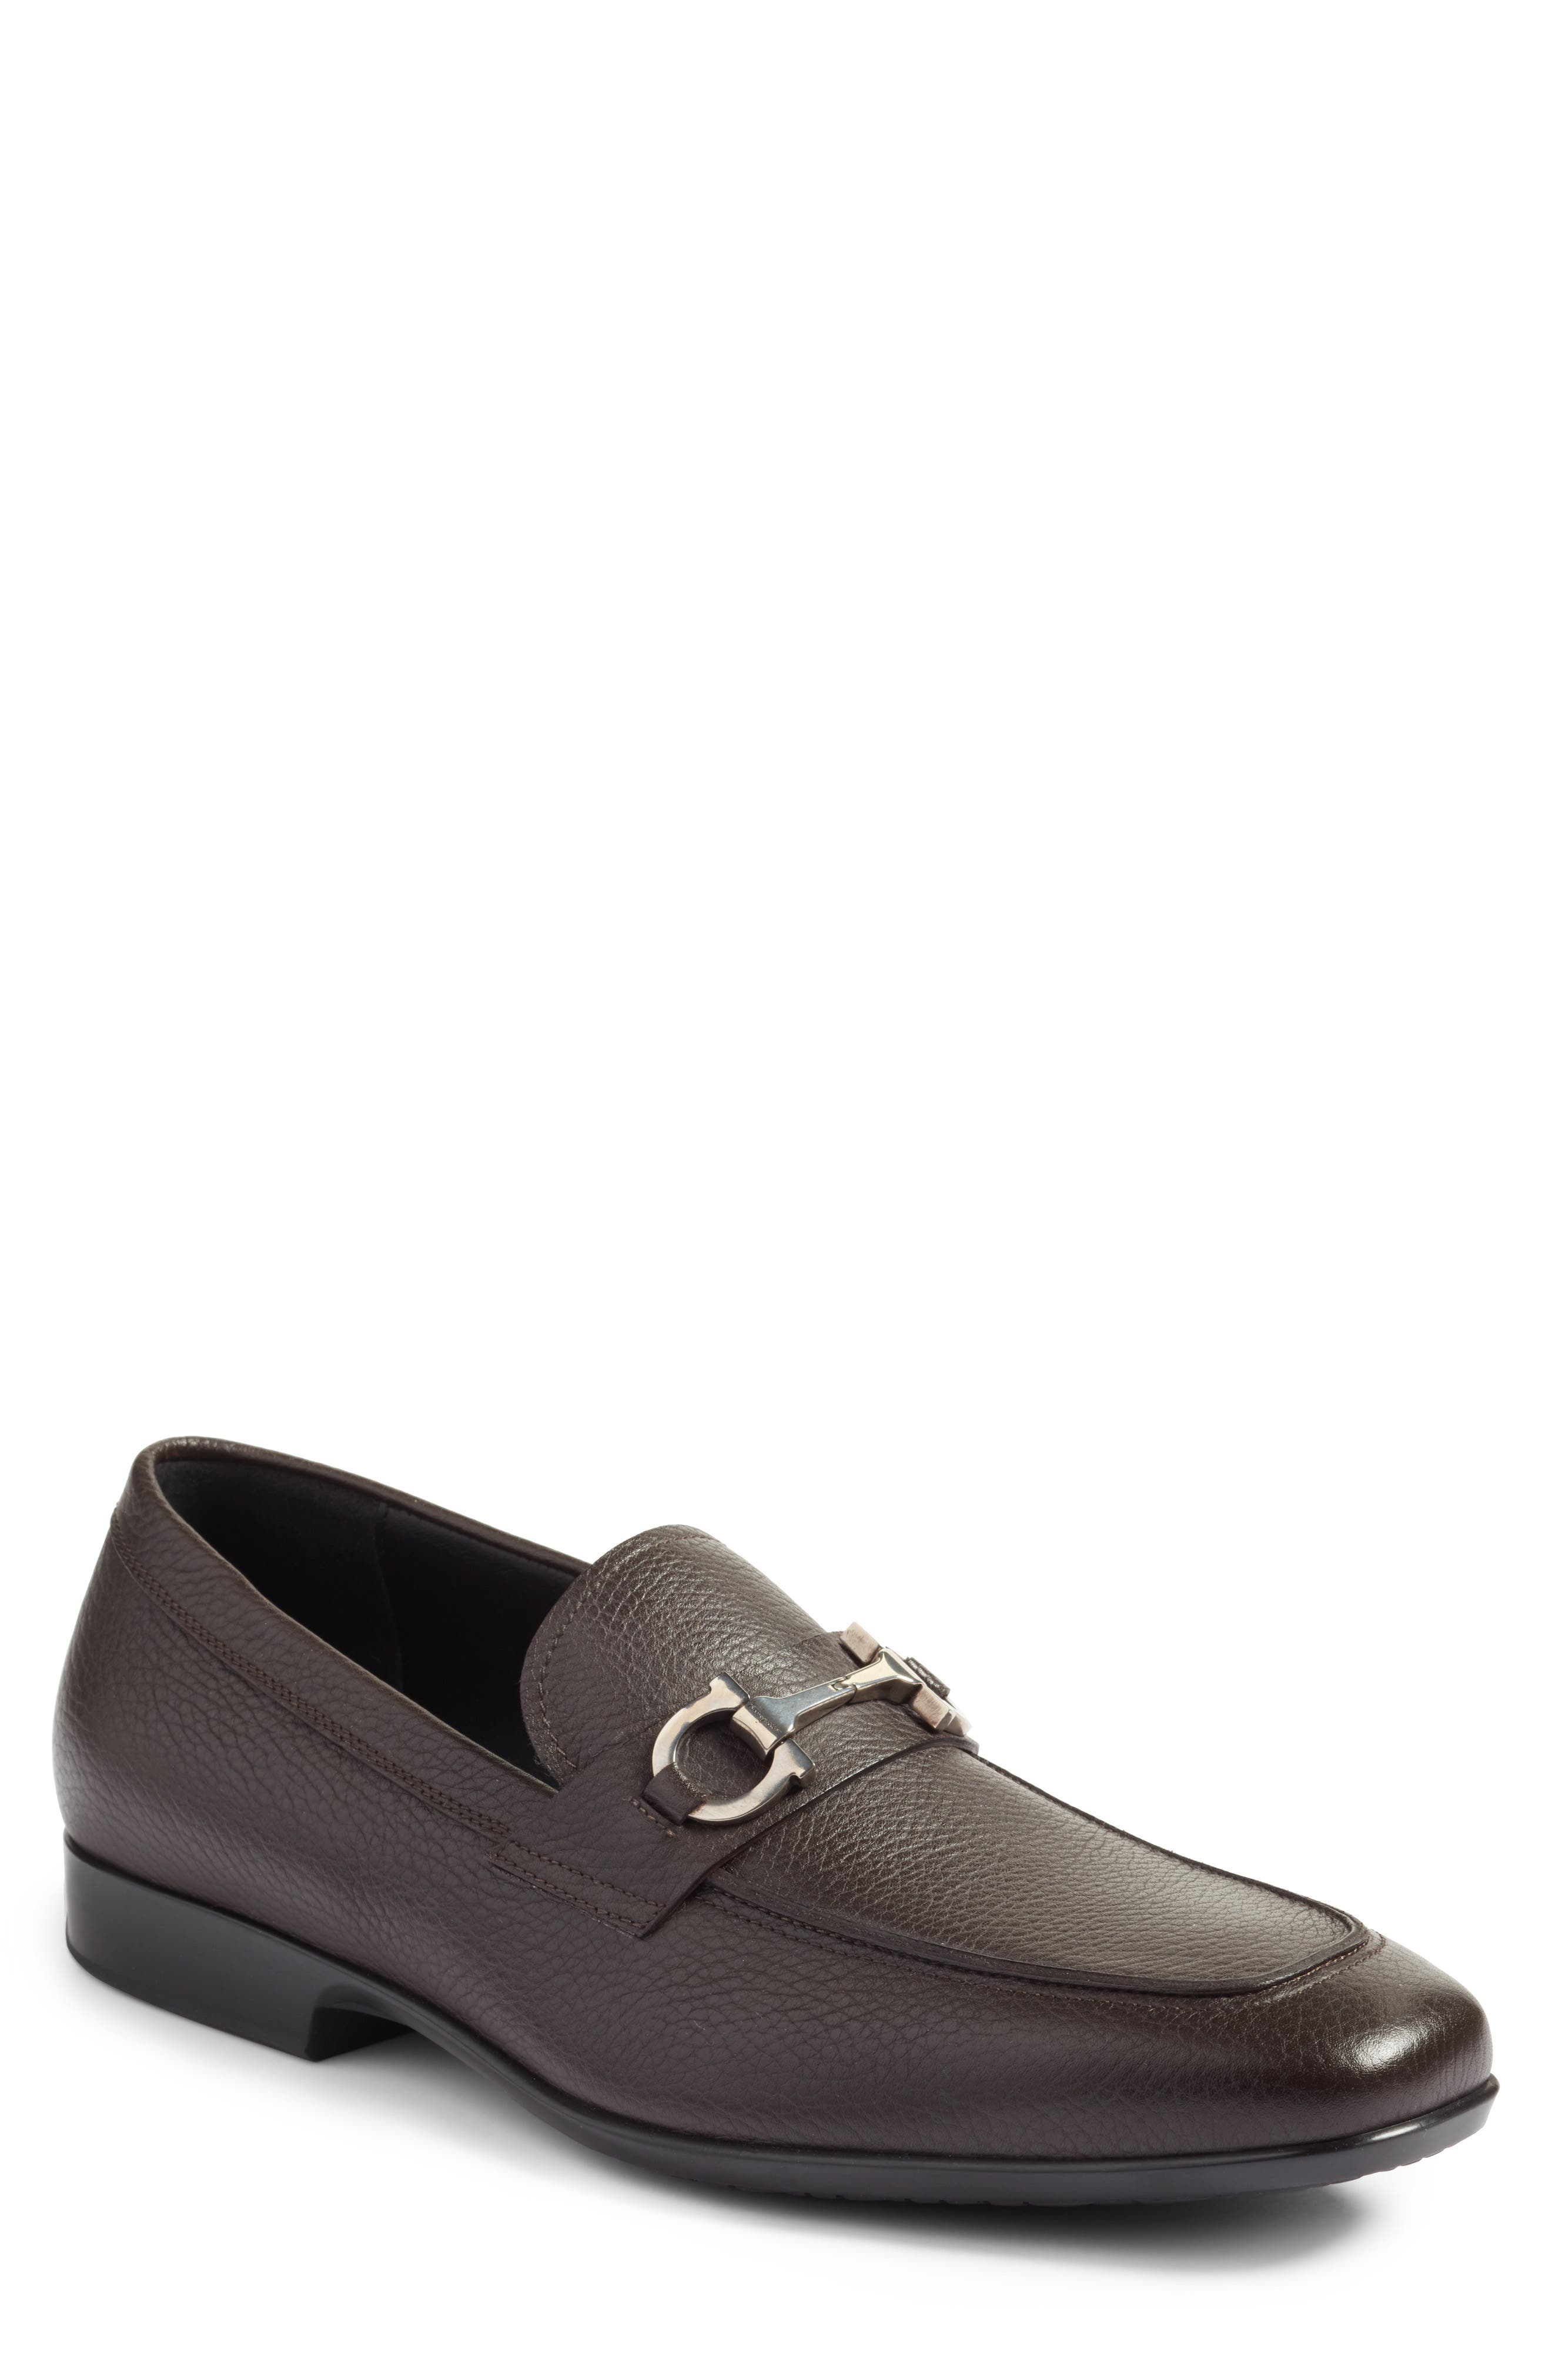 Bit Loafer,                         Main,                         color, Hickory Leather